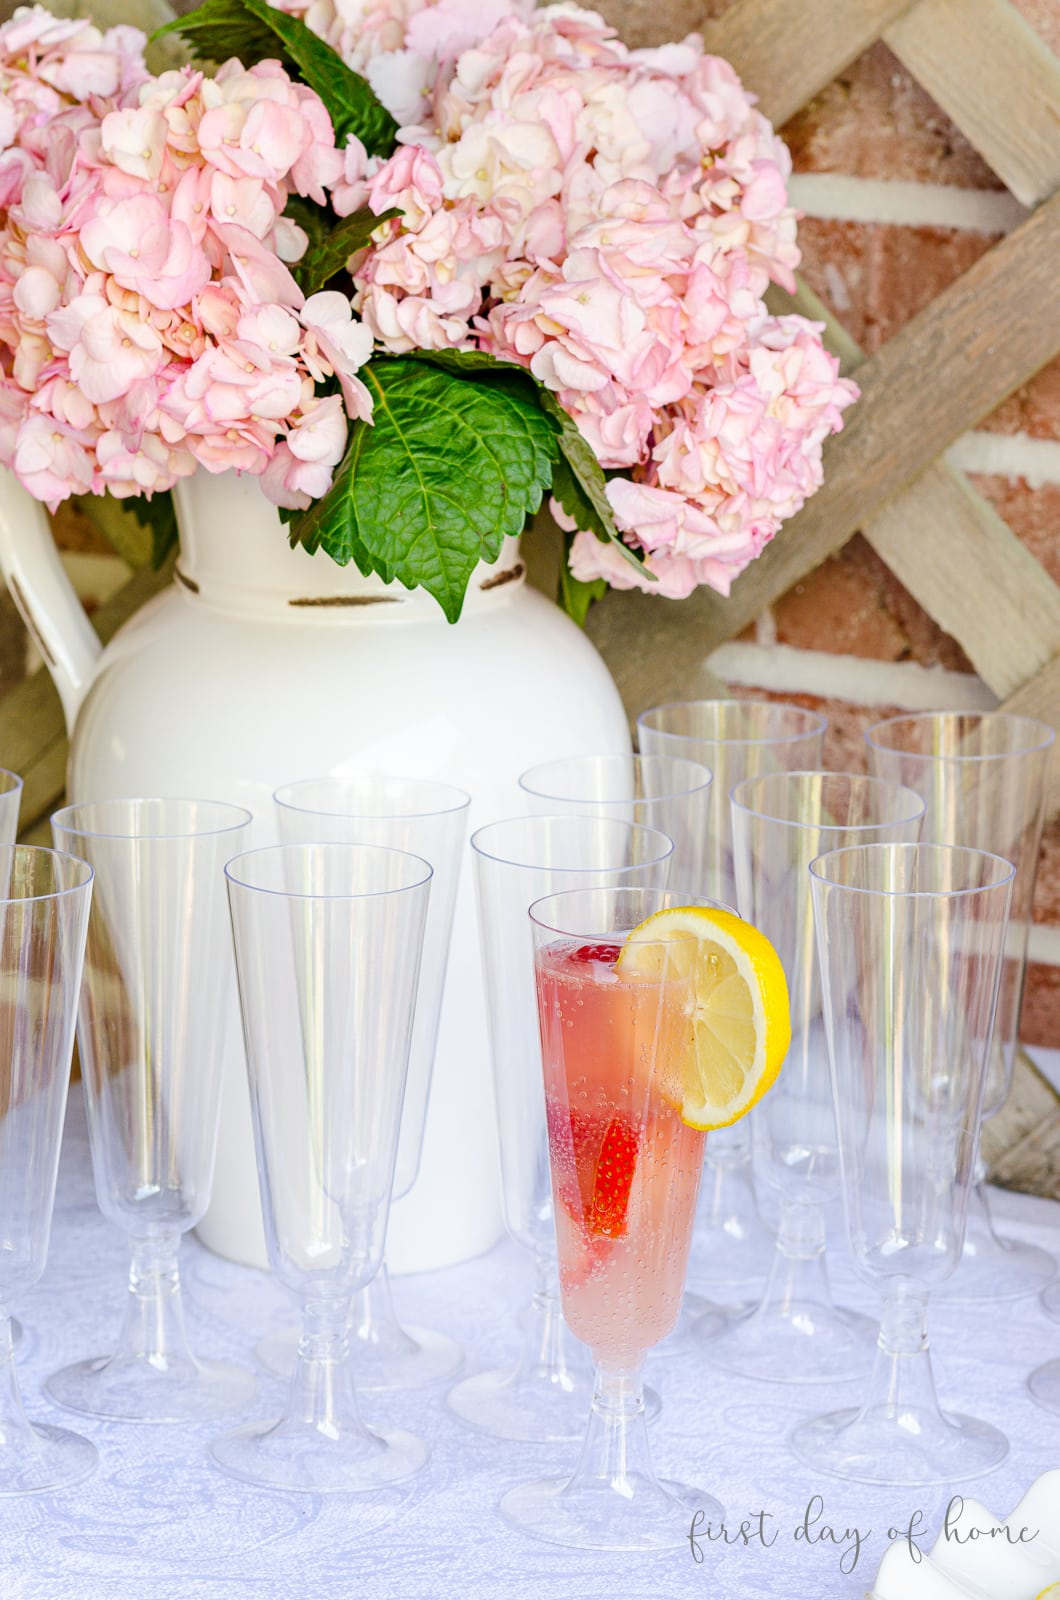 Pink mimosa drink with lemon wedge and pink hydrangea arrangement in background